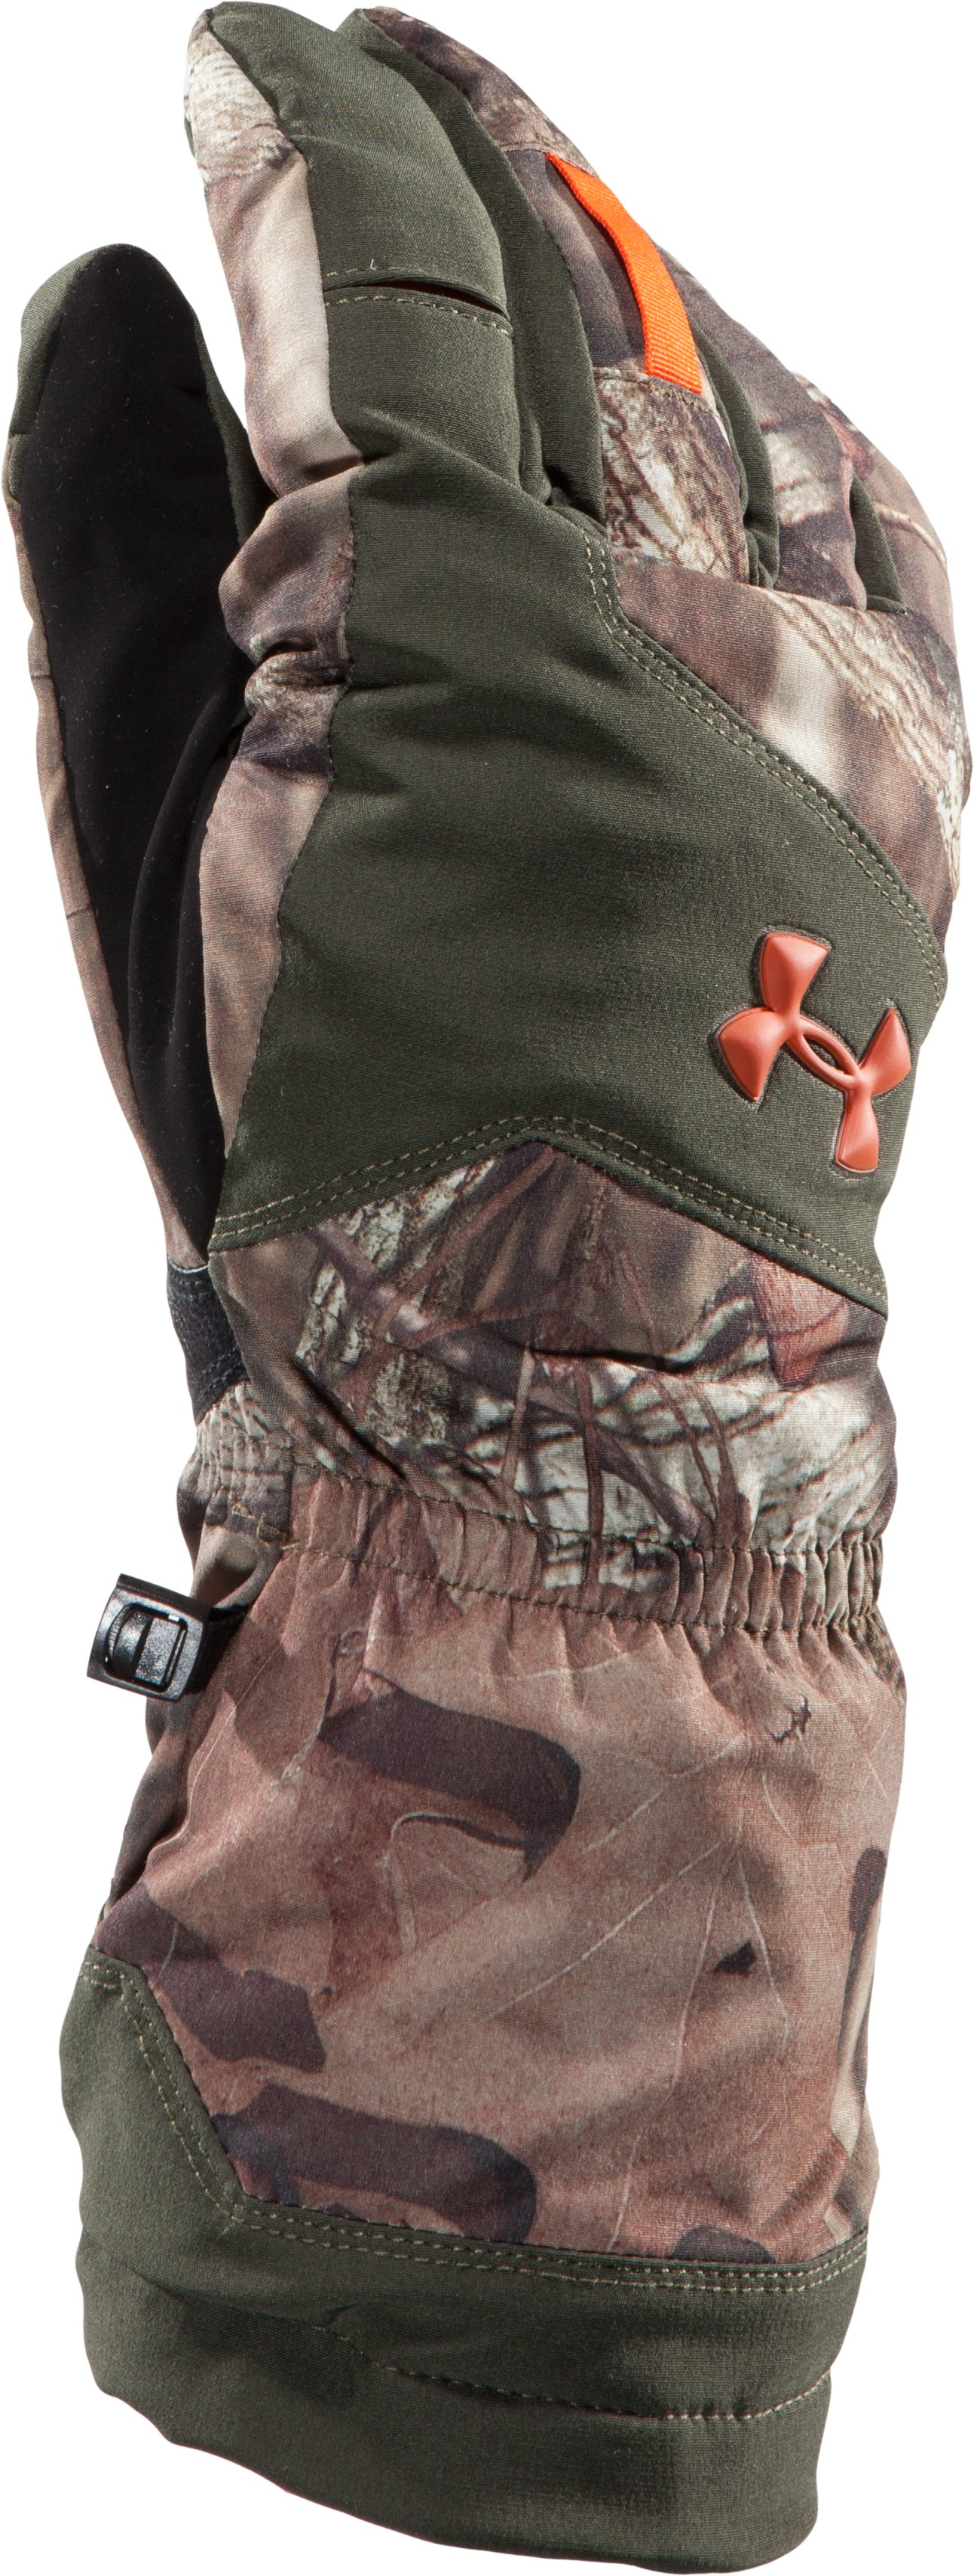 Men's ColdGear® Infrared Gunpowder Gloves, Mossy Oak Break-Up Infinity